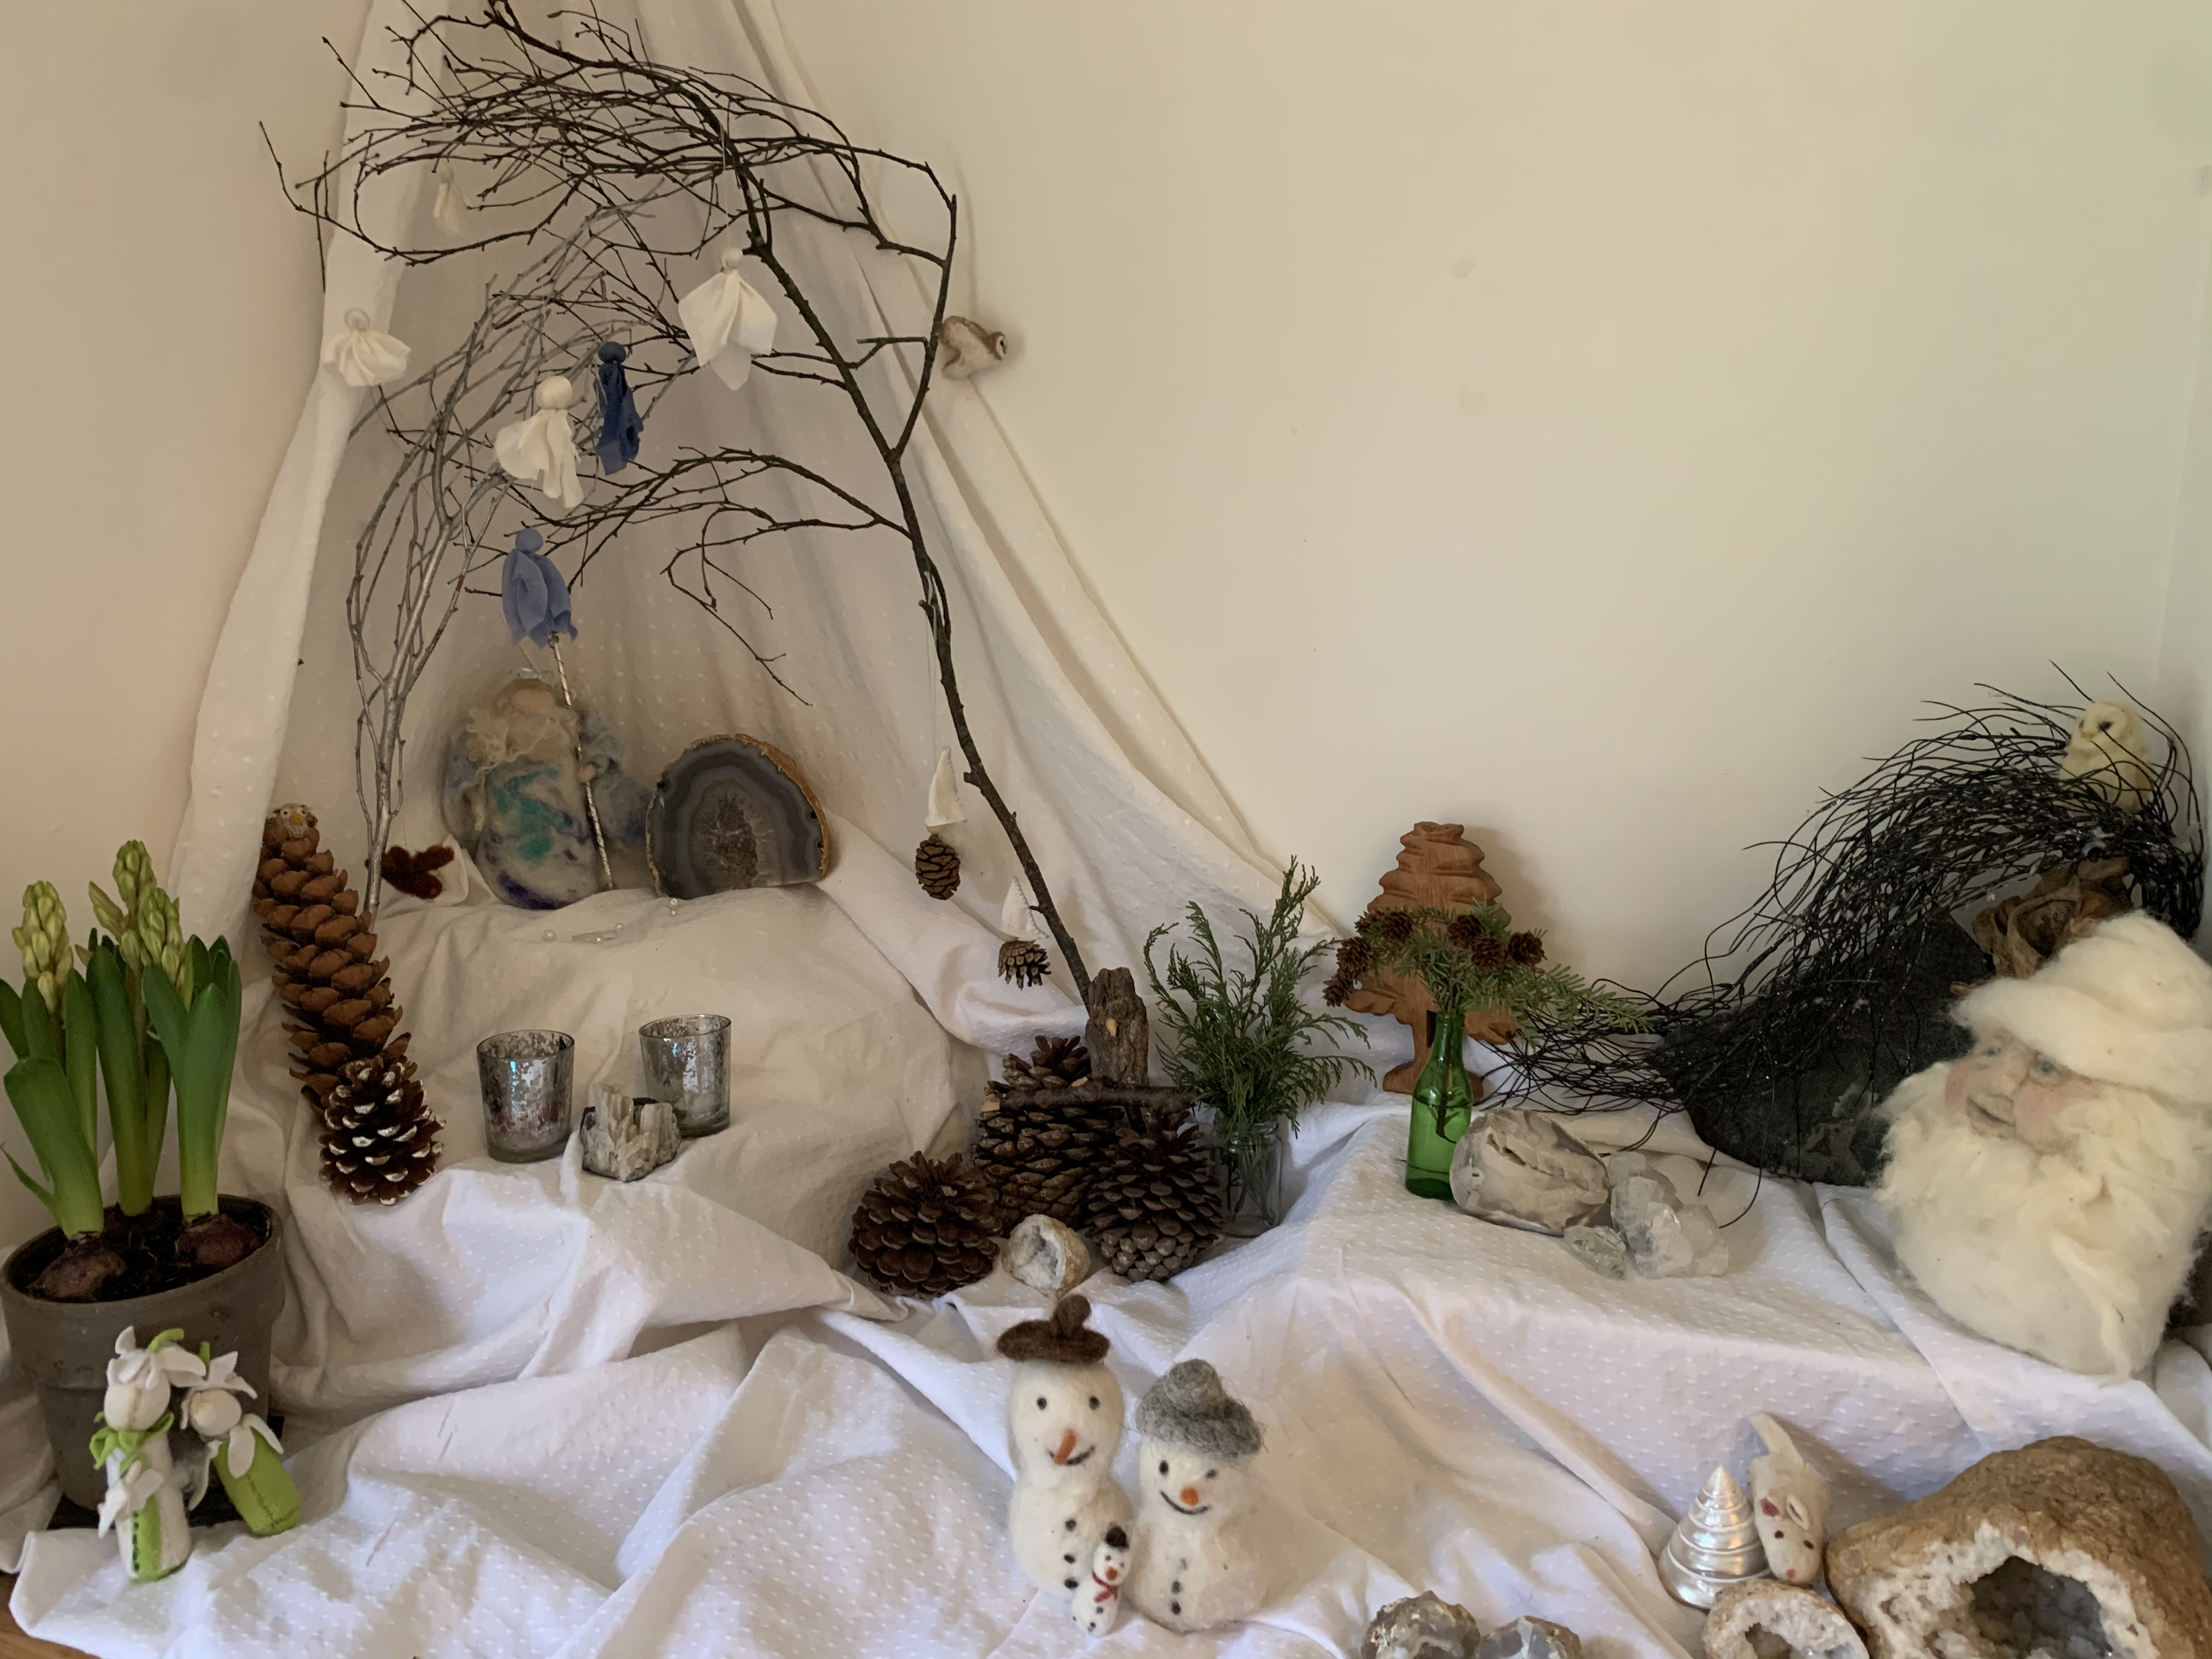 Bringing Steiner magic to your home! session mentored by Lorna  Hendley